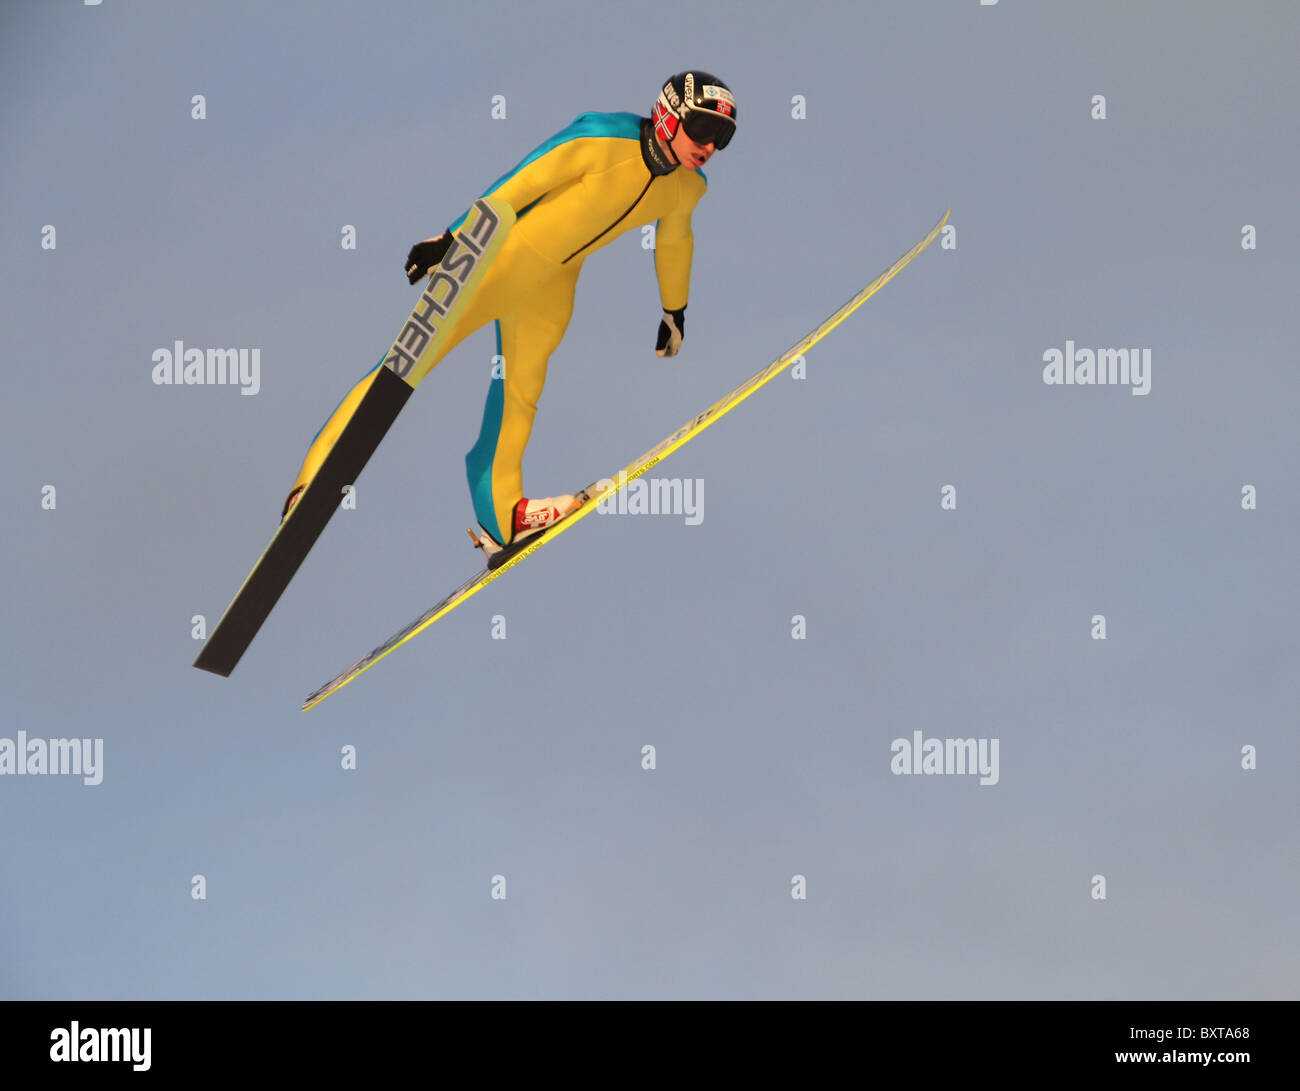 Ski jumping, Nordic Combined and special ski jumpers training in Midtstubakken, jumping hill, Oslo, Norway, 2010 - Stock Image